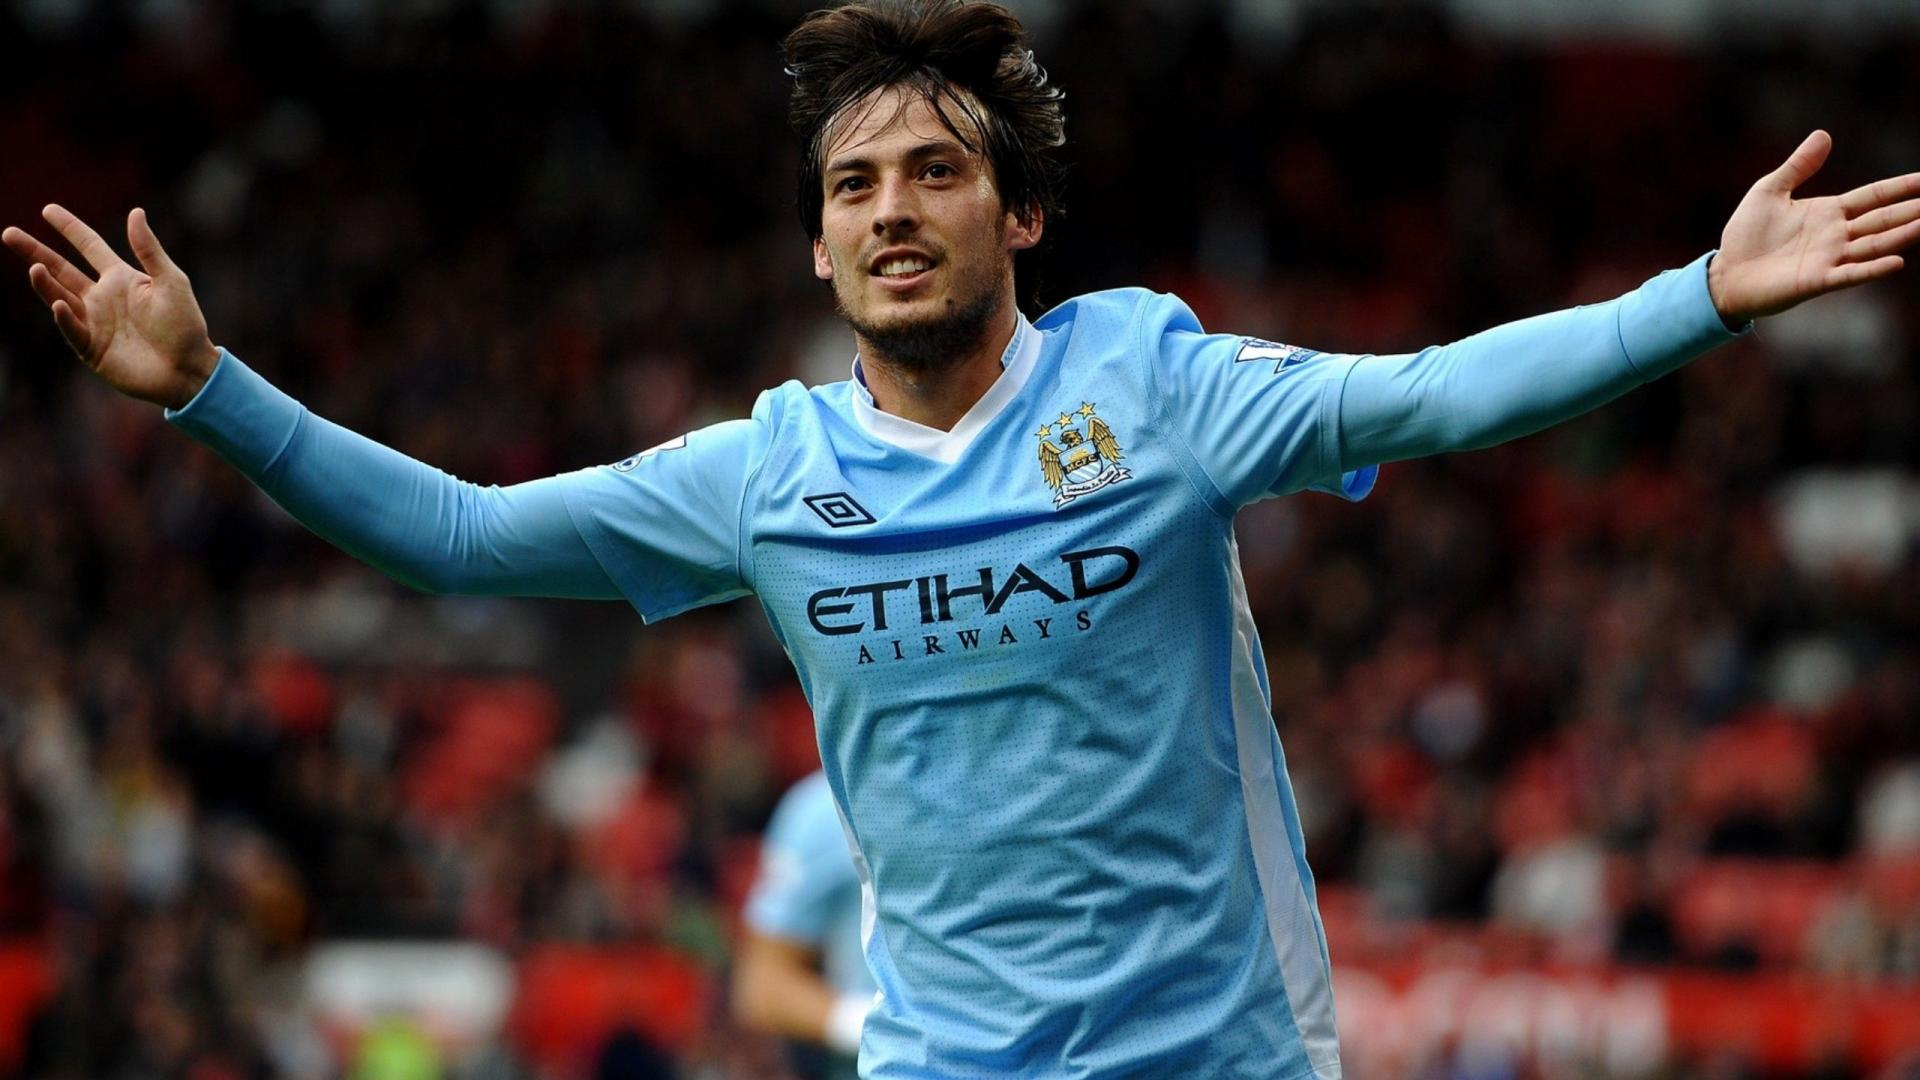 David Silva Backgrounds, Compatible - PC, Mobile, Gadgets| 1920x1080 px